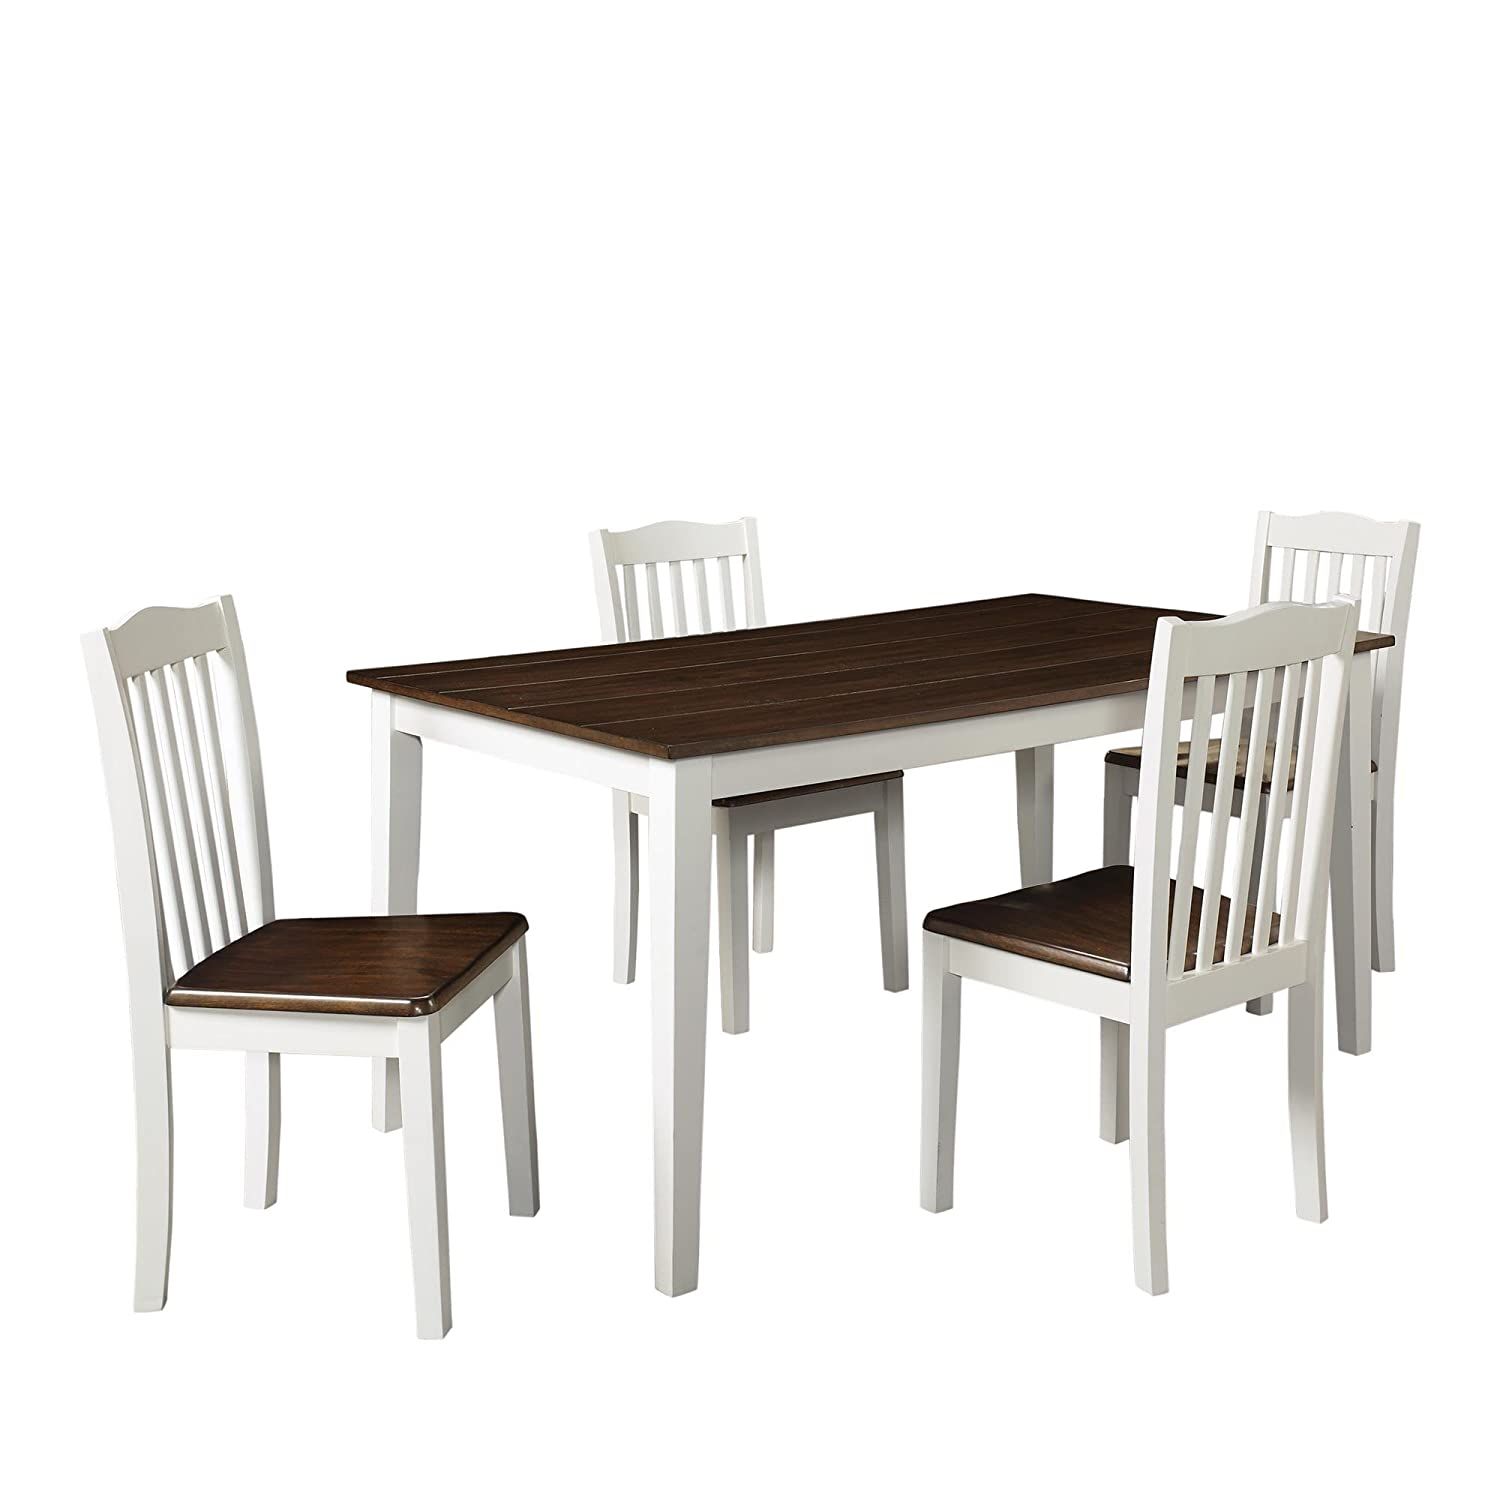 white rustic dining table. amazon.com: dorel living shiloh 5 piece rustic dining set: kitchen \u0026 white table l